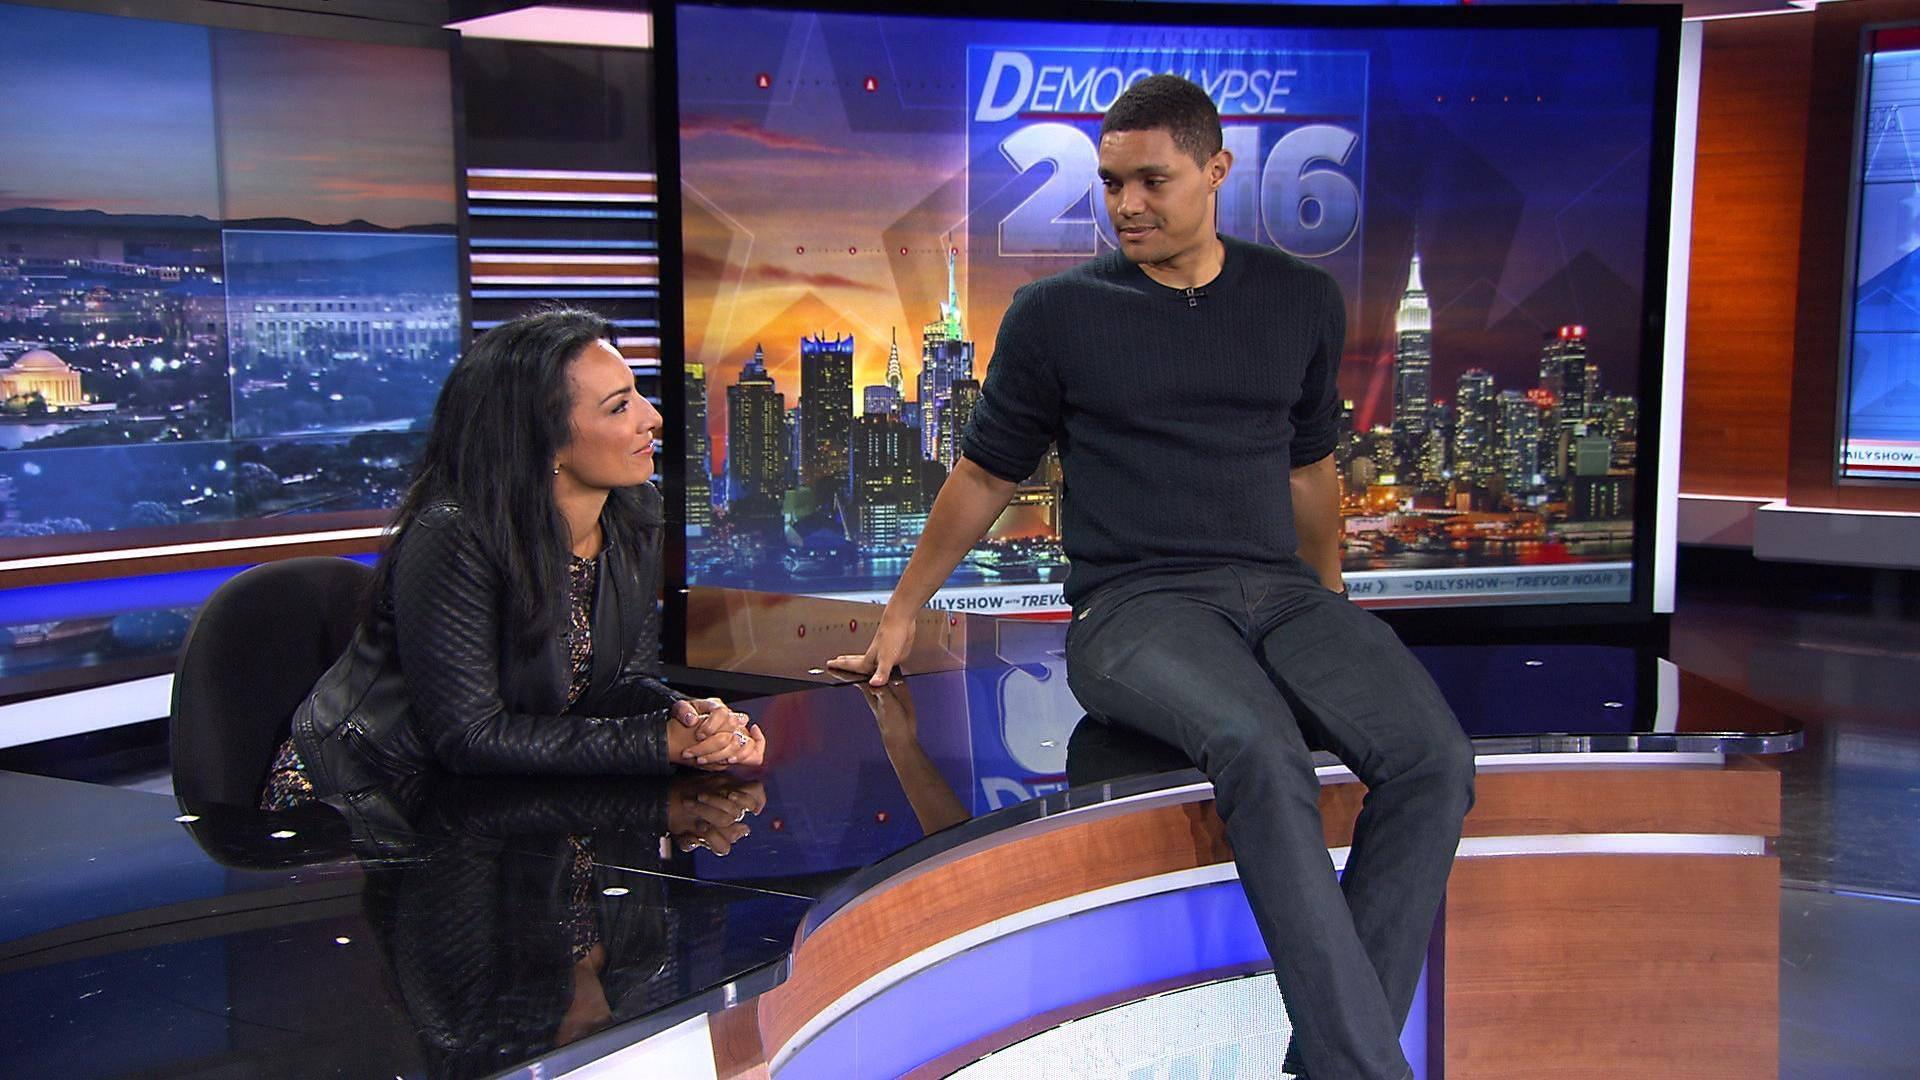 Sunday is Full of Uplifting Beauty – My New Crush is Trevor Noah ...